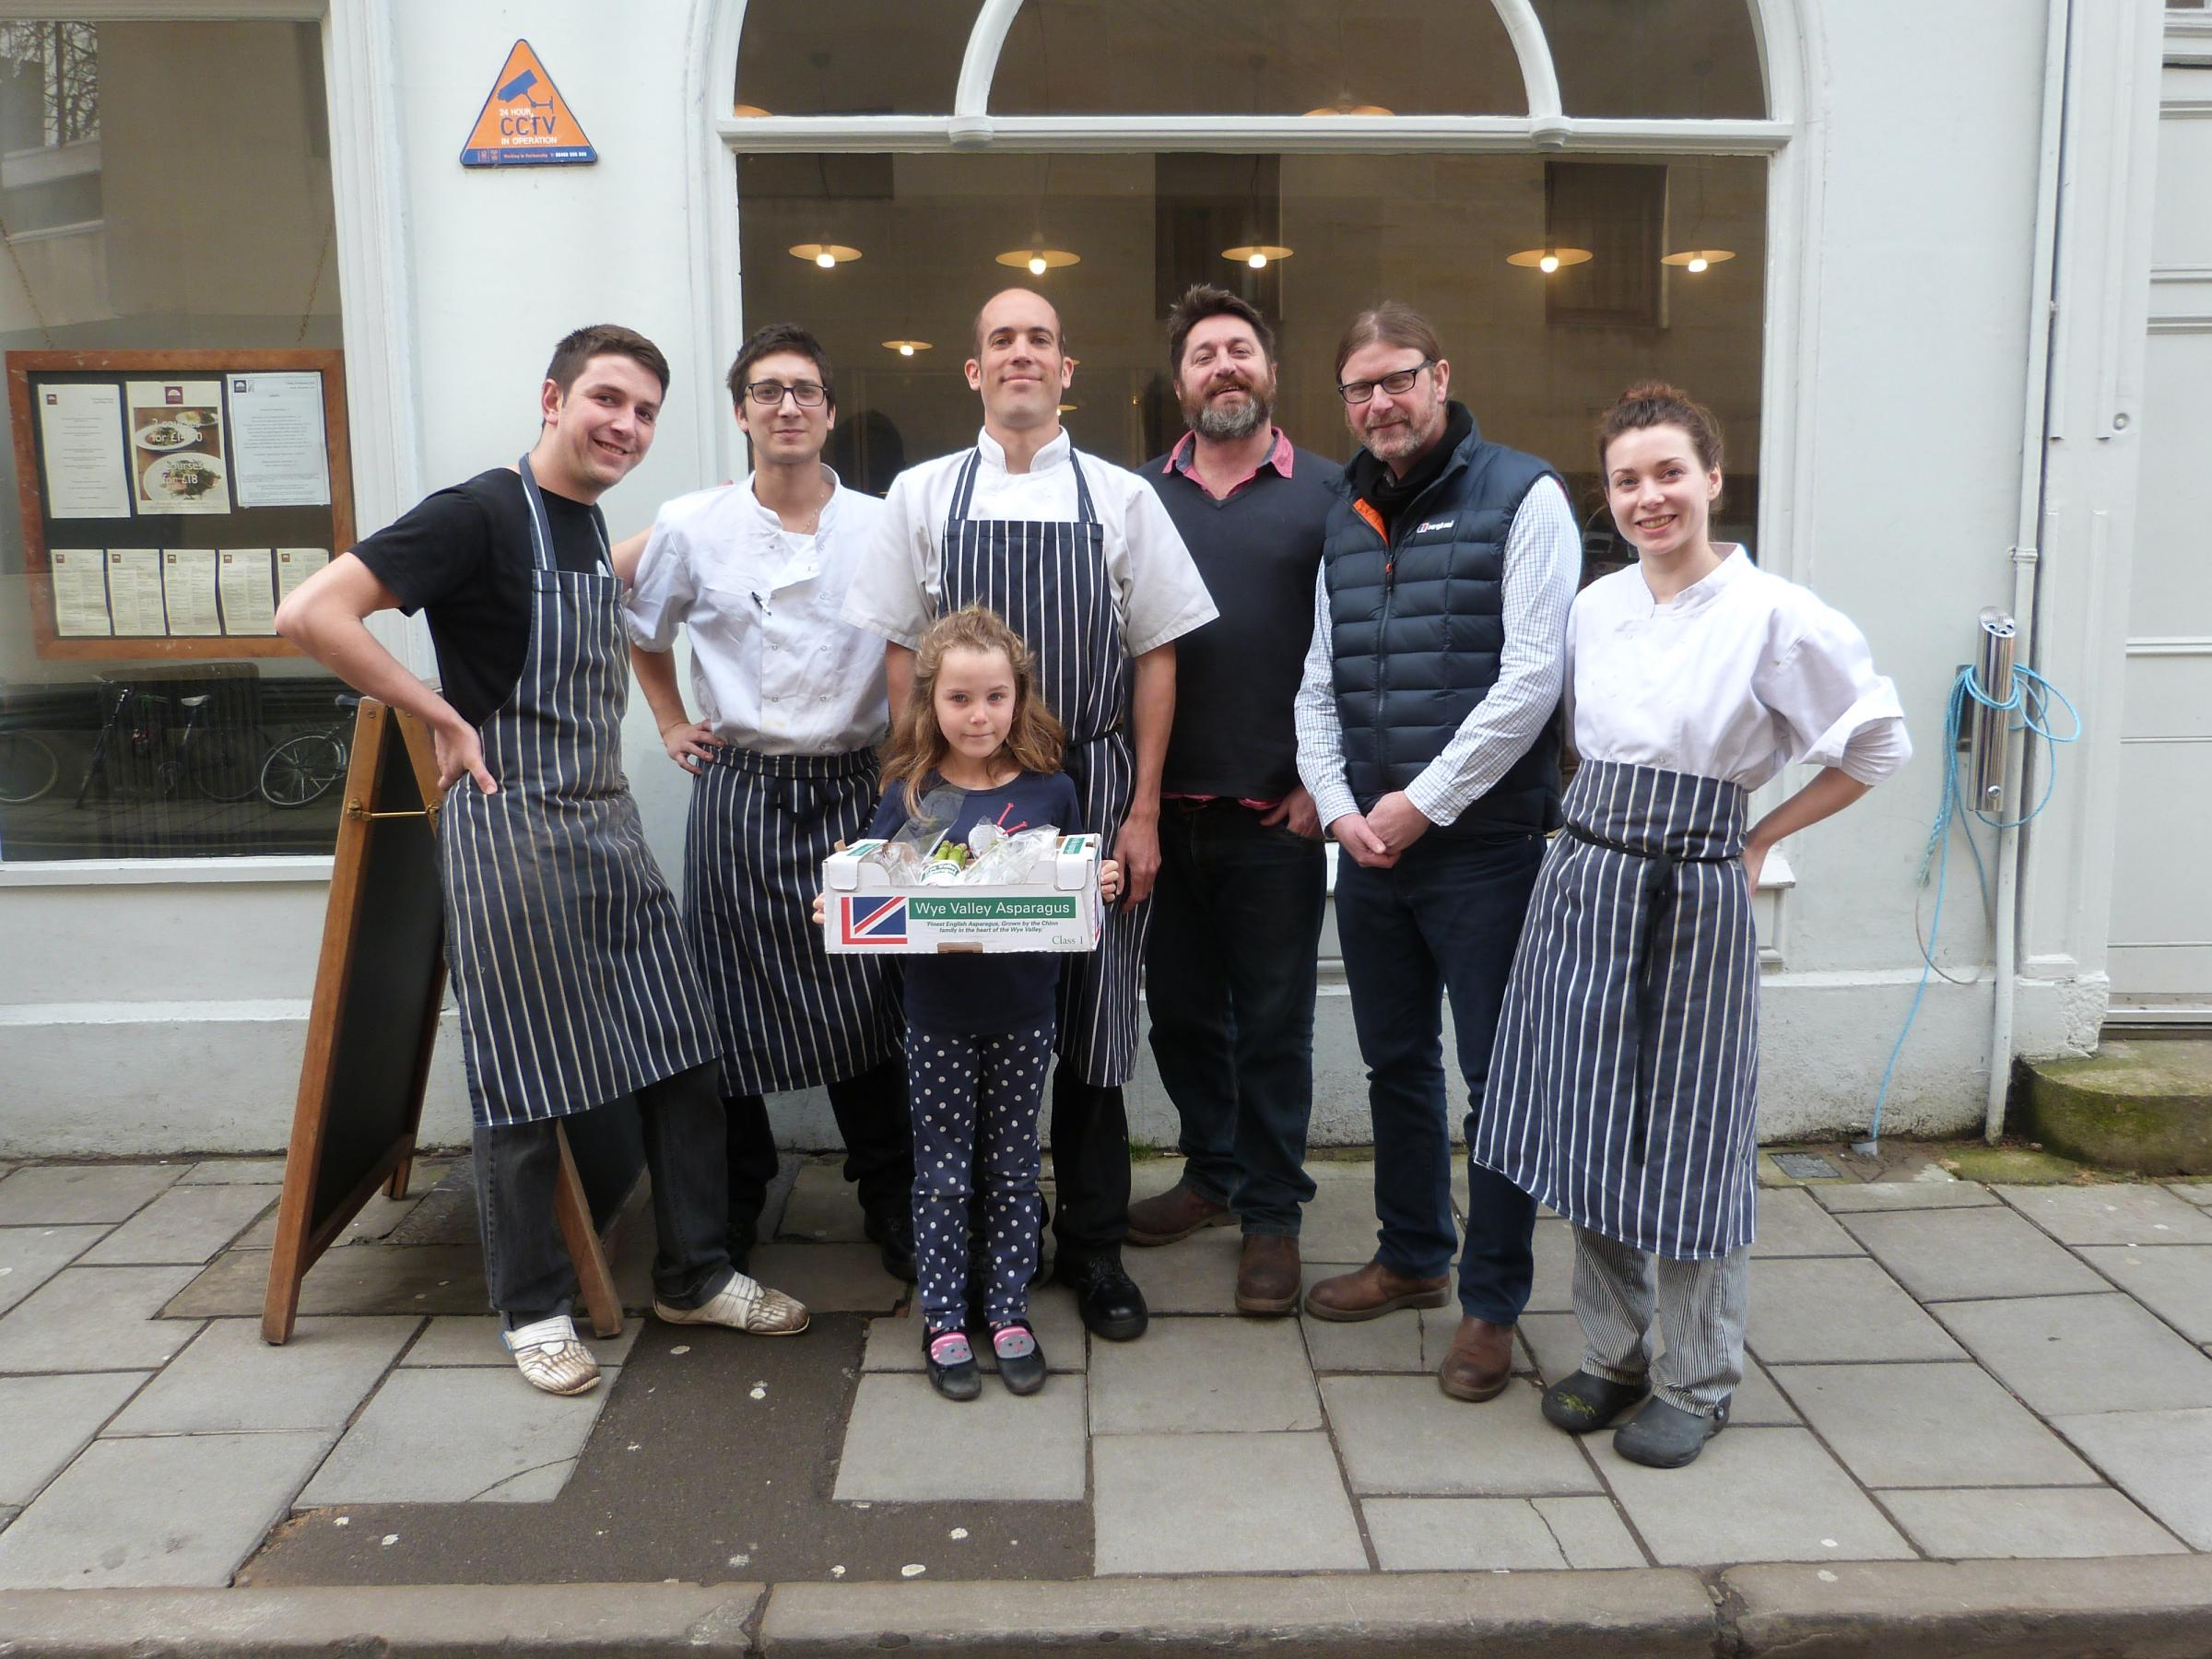 Staff at Turl St. Kitchen in Oxford with the New Wave Seafood team